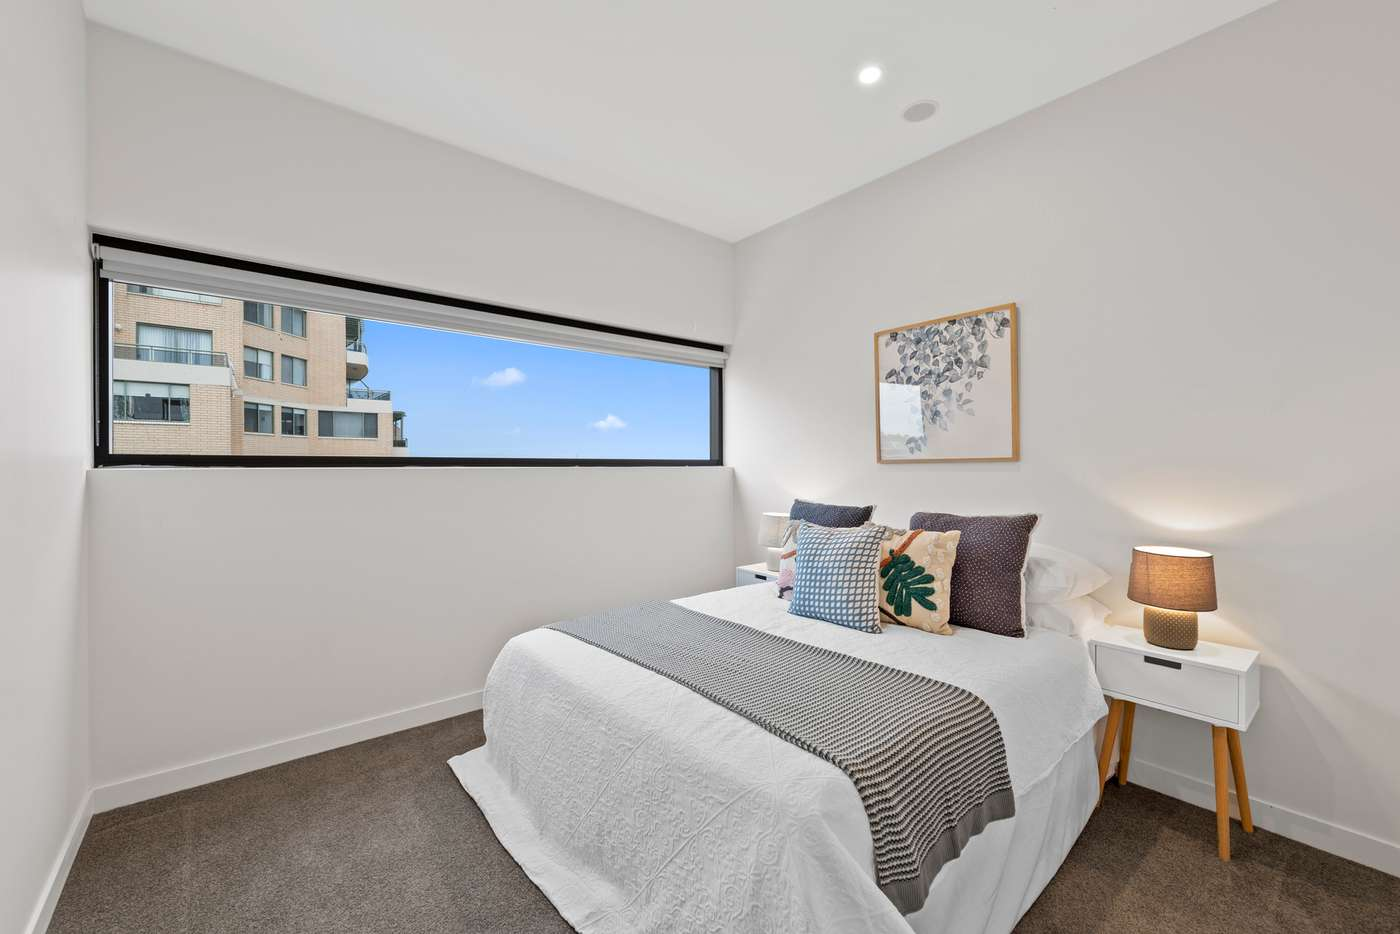 Fifth view of Homely apartment listing, 92/117 Pacific Highway, Hornsby NSW 2077